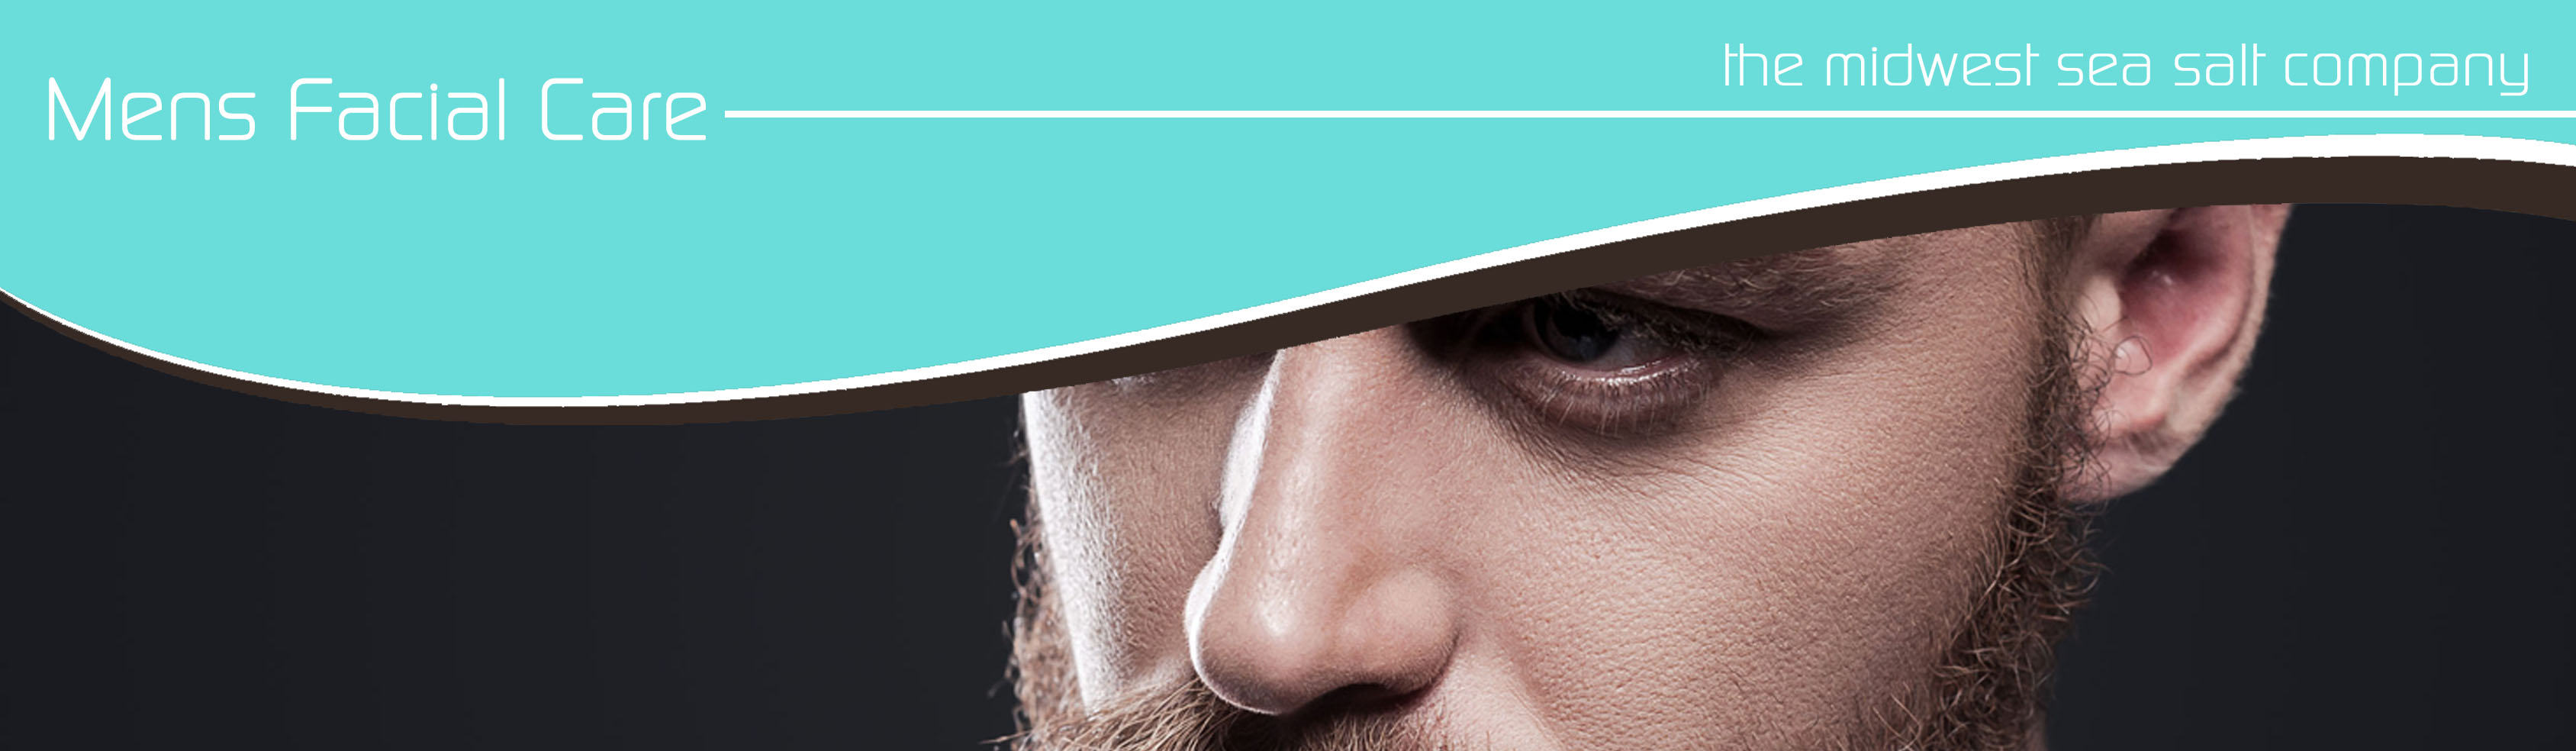 mens-facial-care-banner.jpg